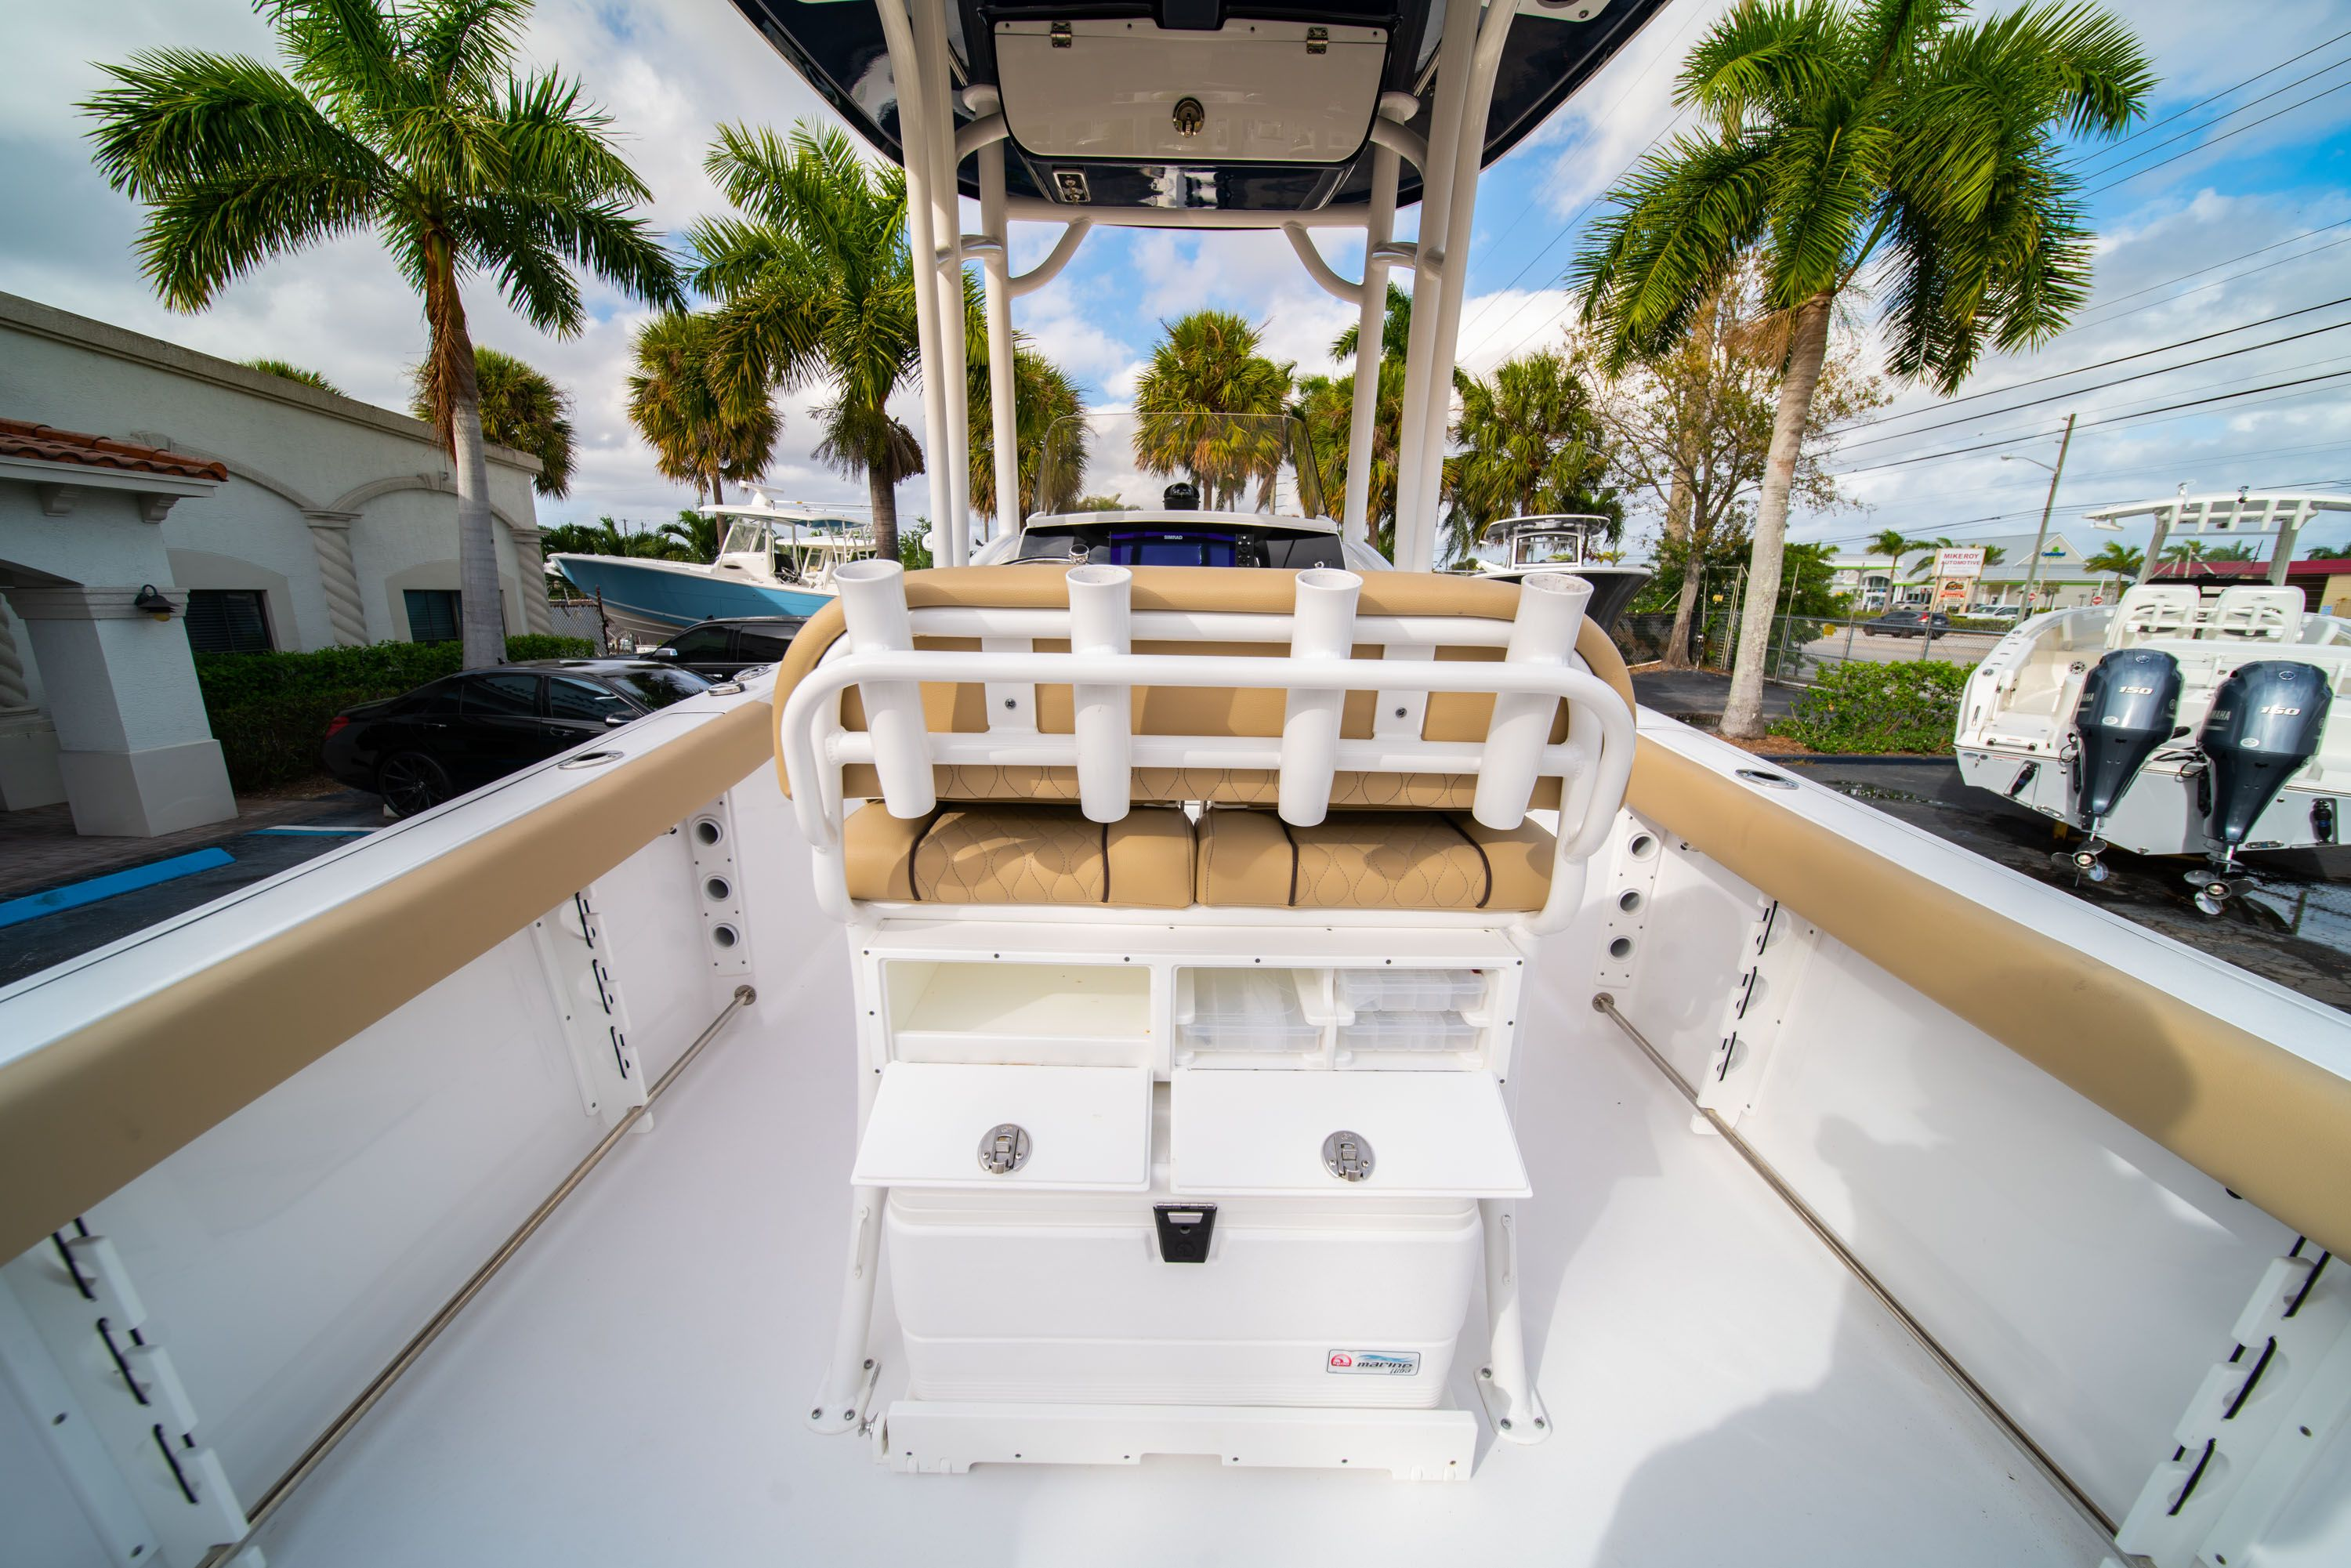 Thumbnail 19 for Used 2018 Sportsman Open 232 Center Console boat for sale in West Palm Beach, FL